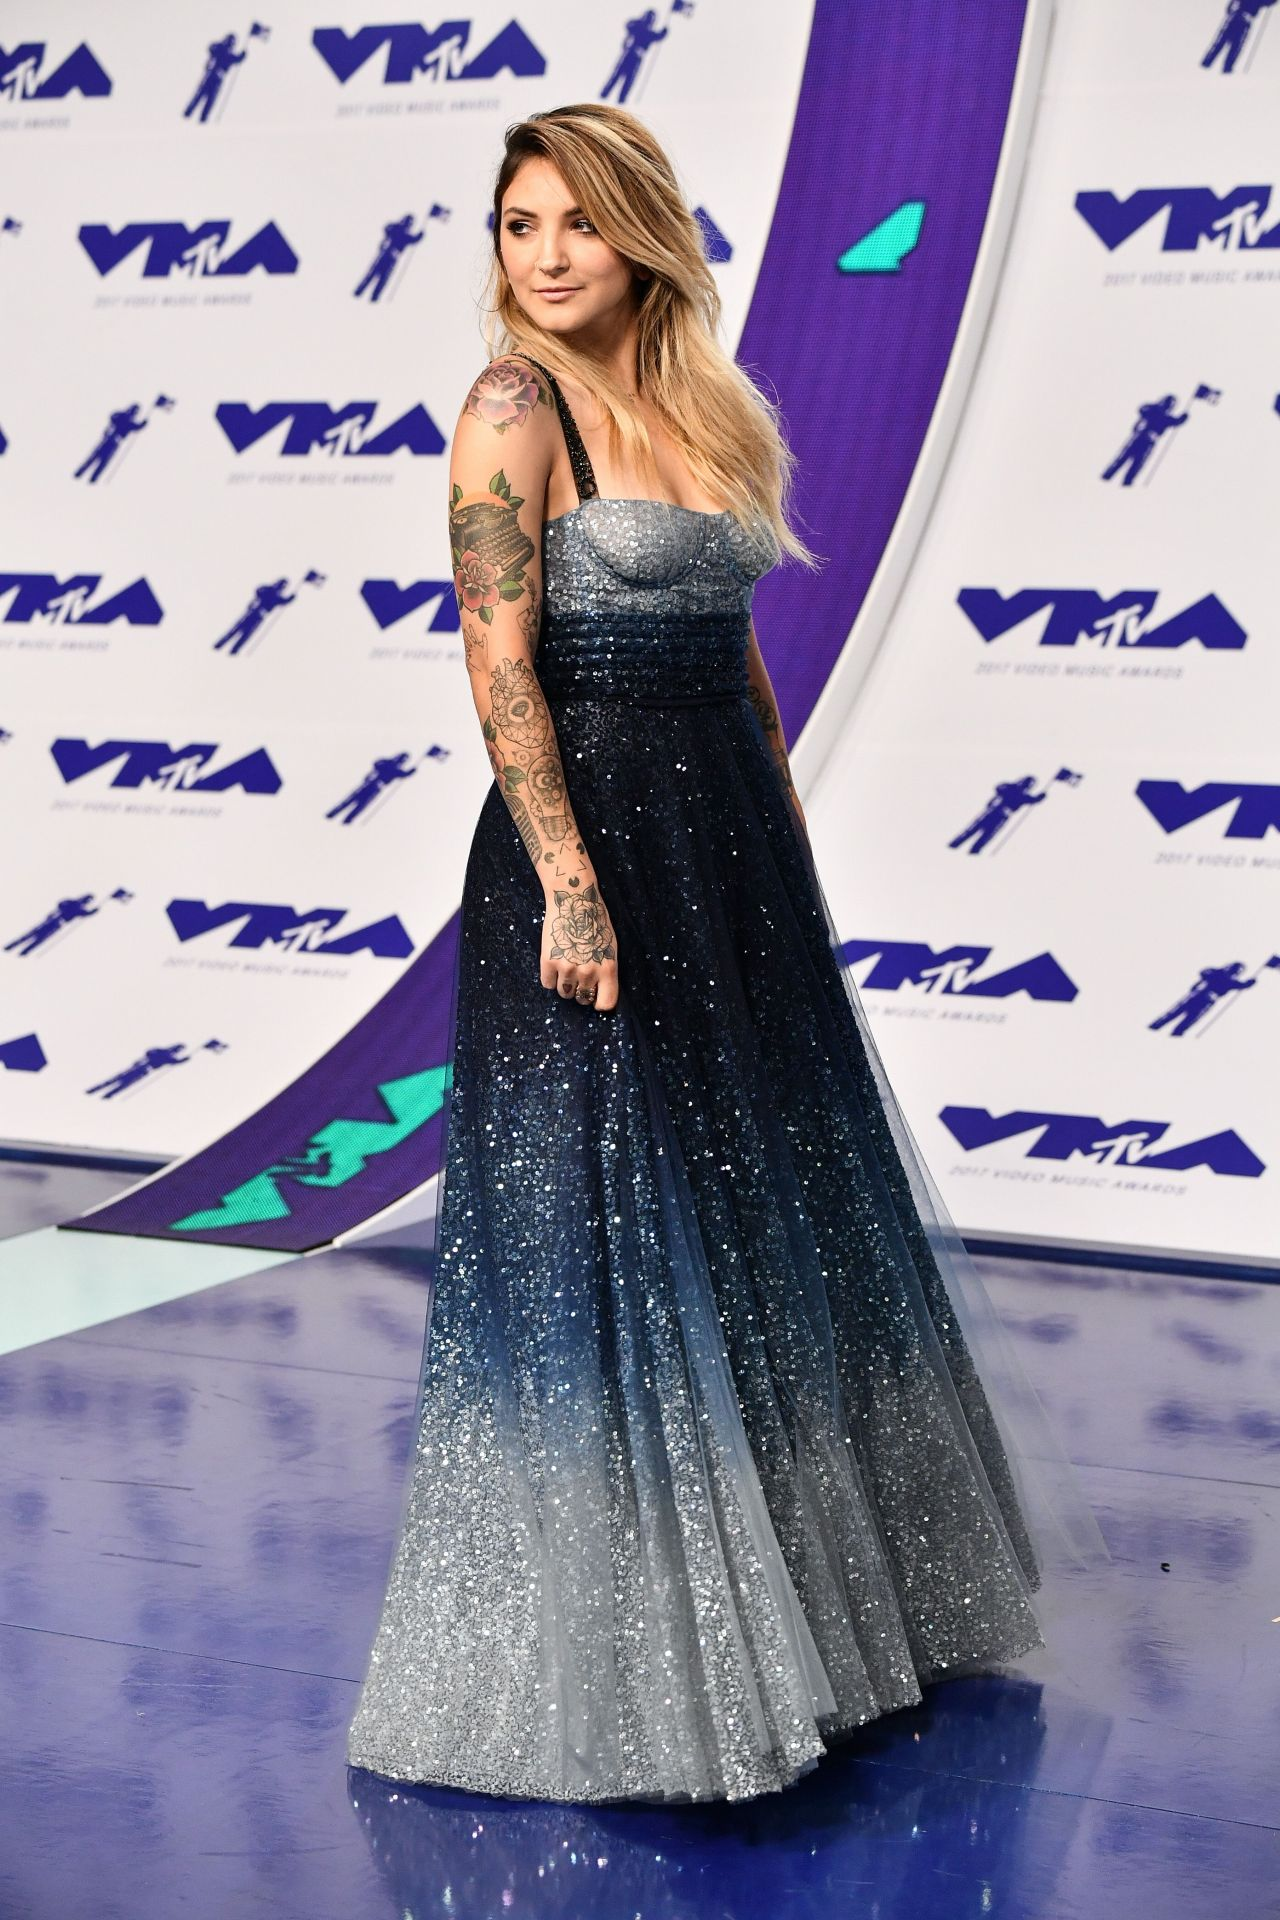 Julia Michaels Mtv Video Music Awards In Los Angeles 08